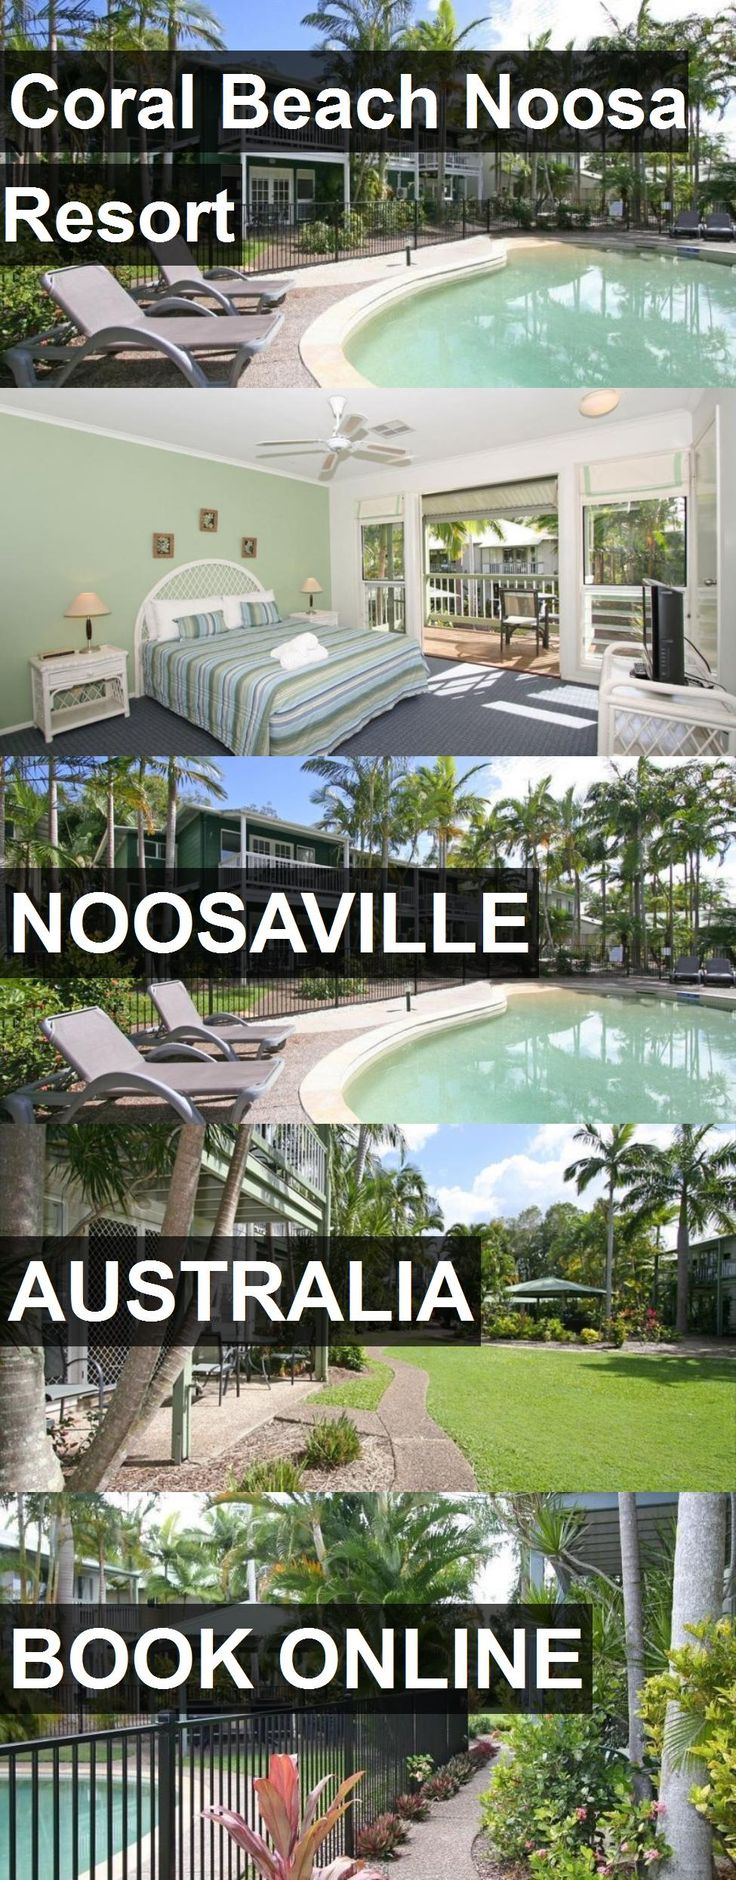 Hotel Coral Beach Noosa Resort in Noosaville, Australia. For more information, photos, reviews and best prices please follow the link. #Australia #Noosaville #travel #vacation #hotel